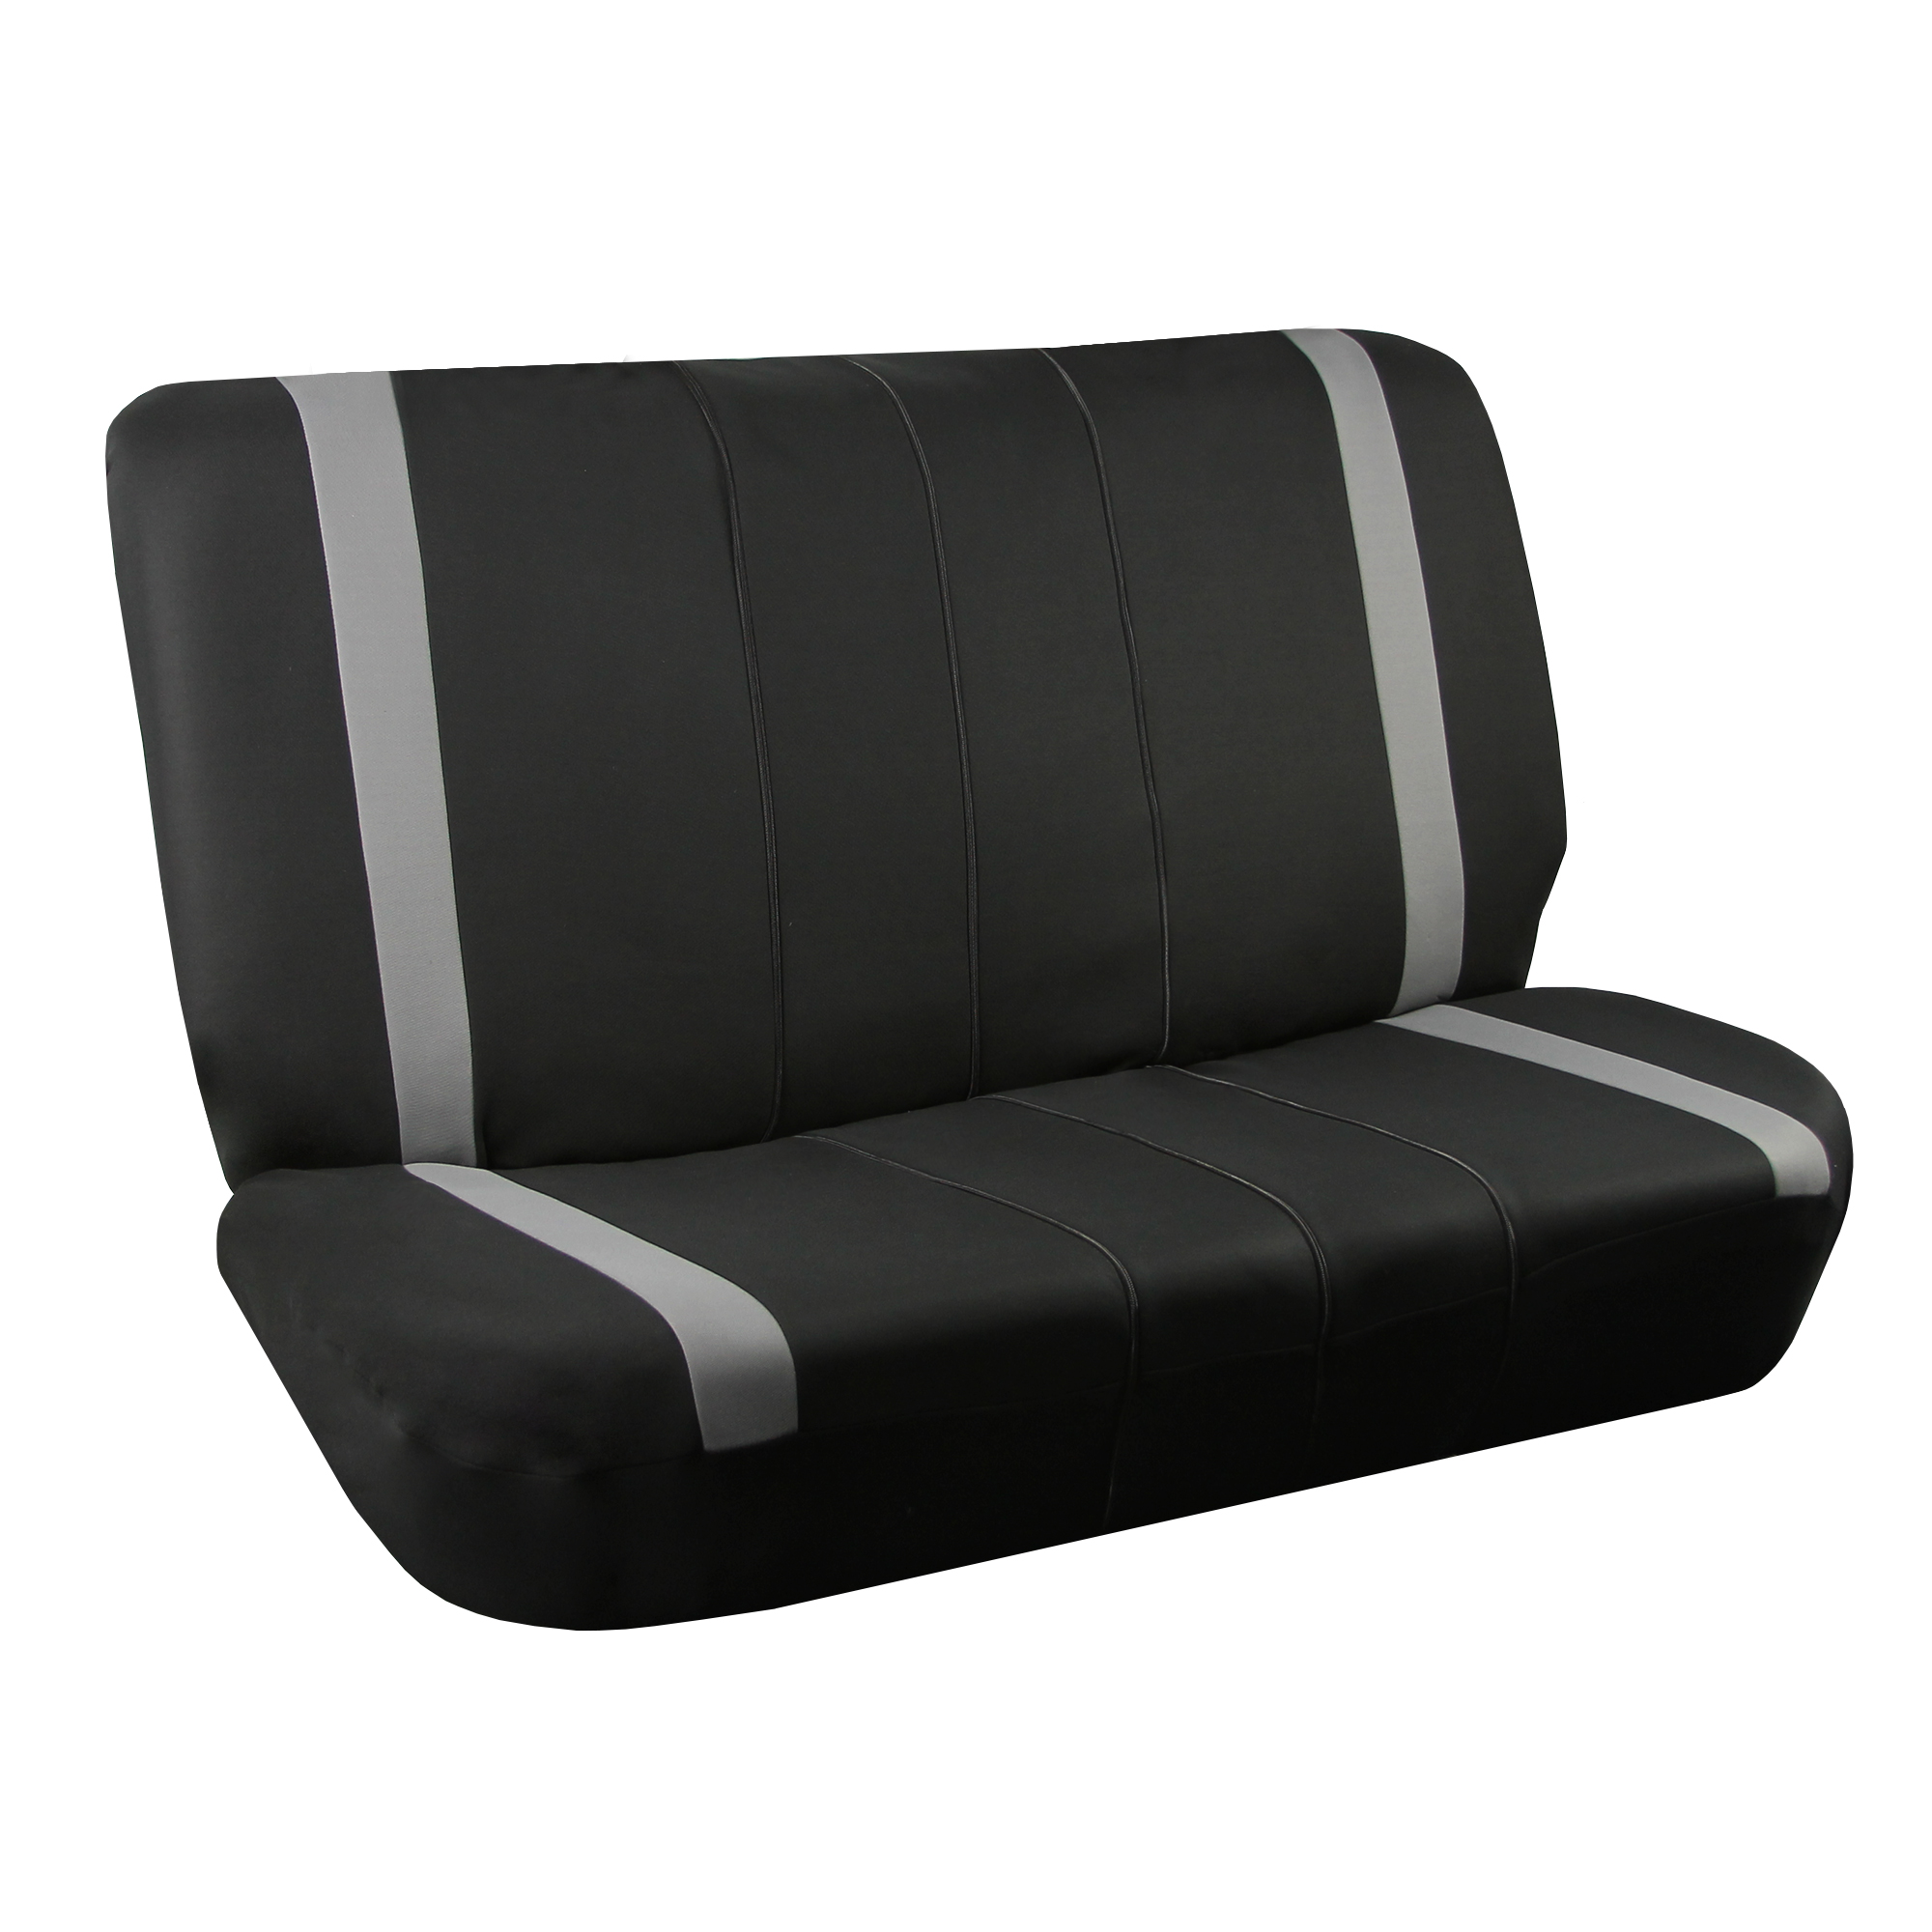 Heavy Truck Seat Covers : Car seat covers heavy duty carpet floor mat highback for